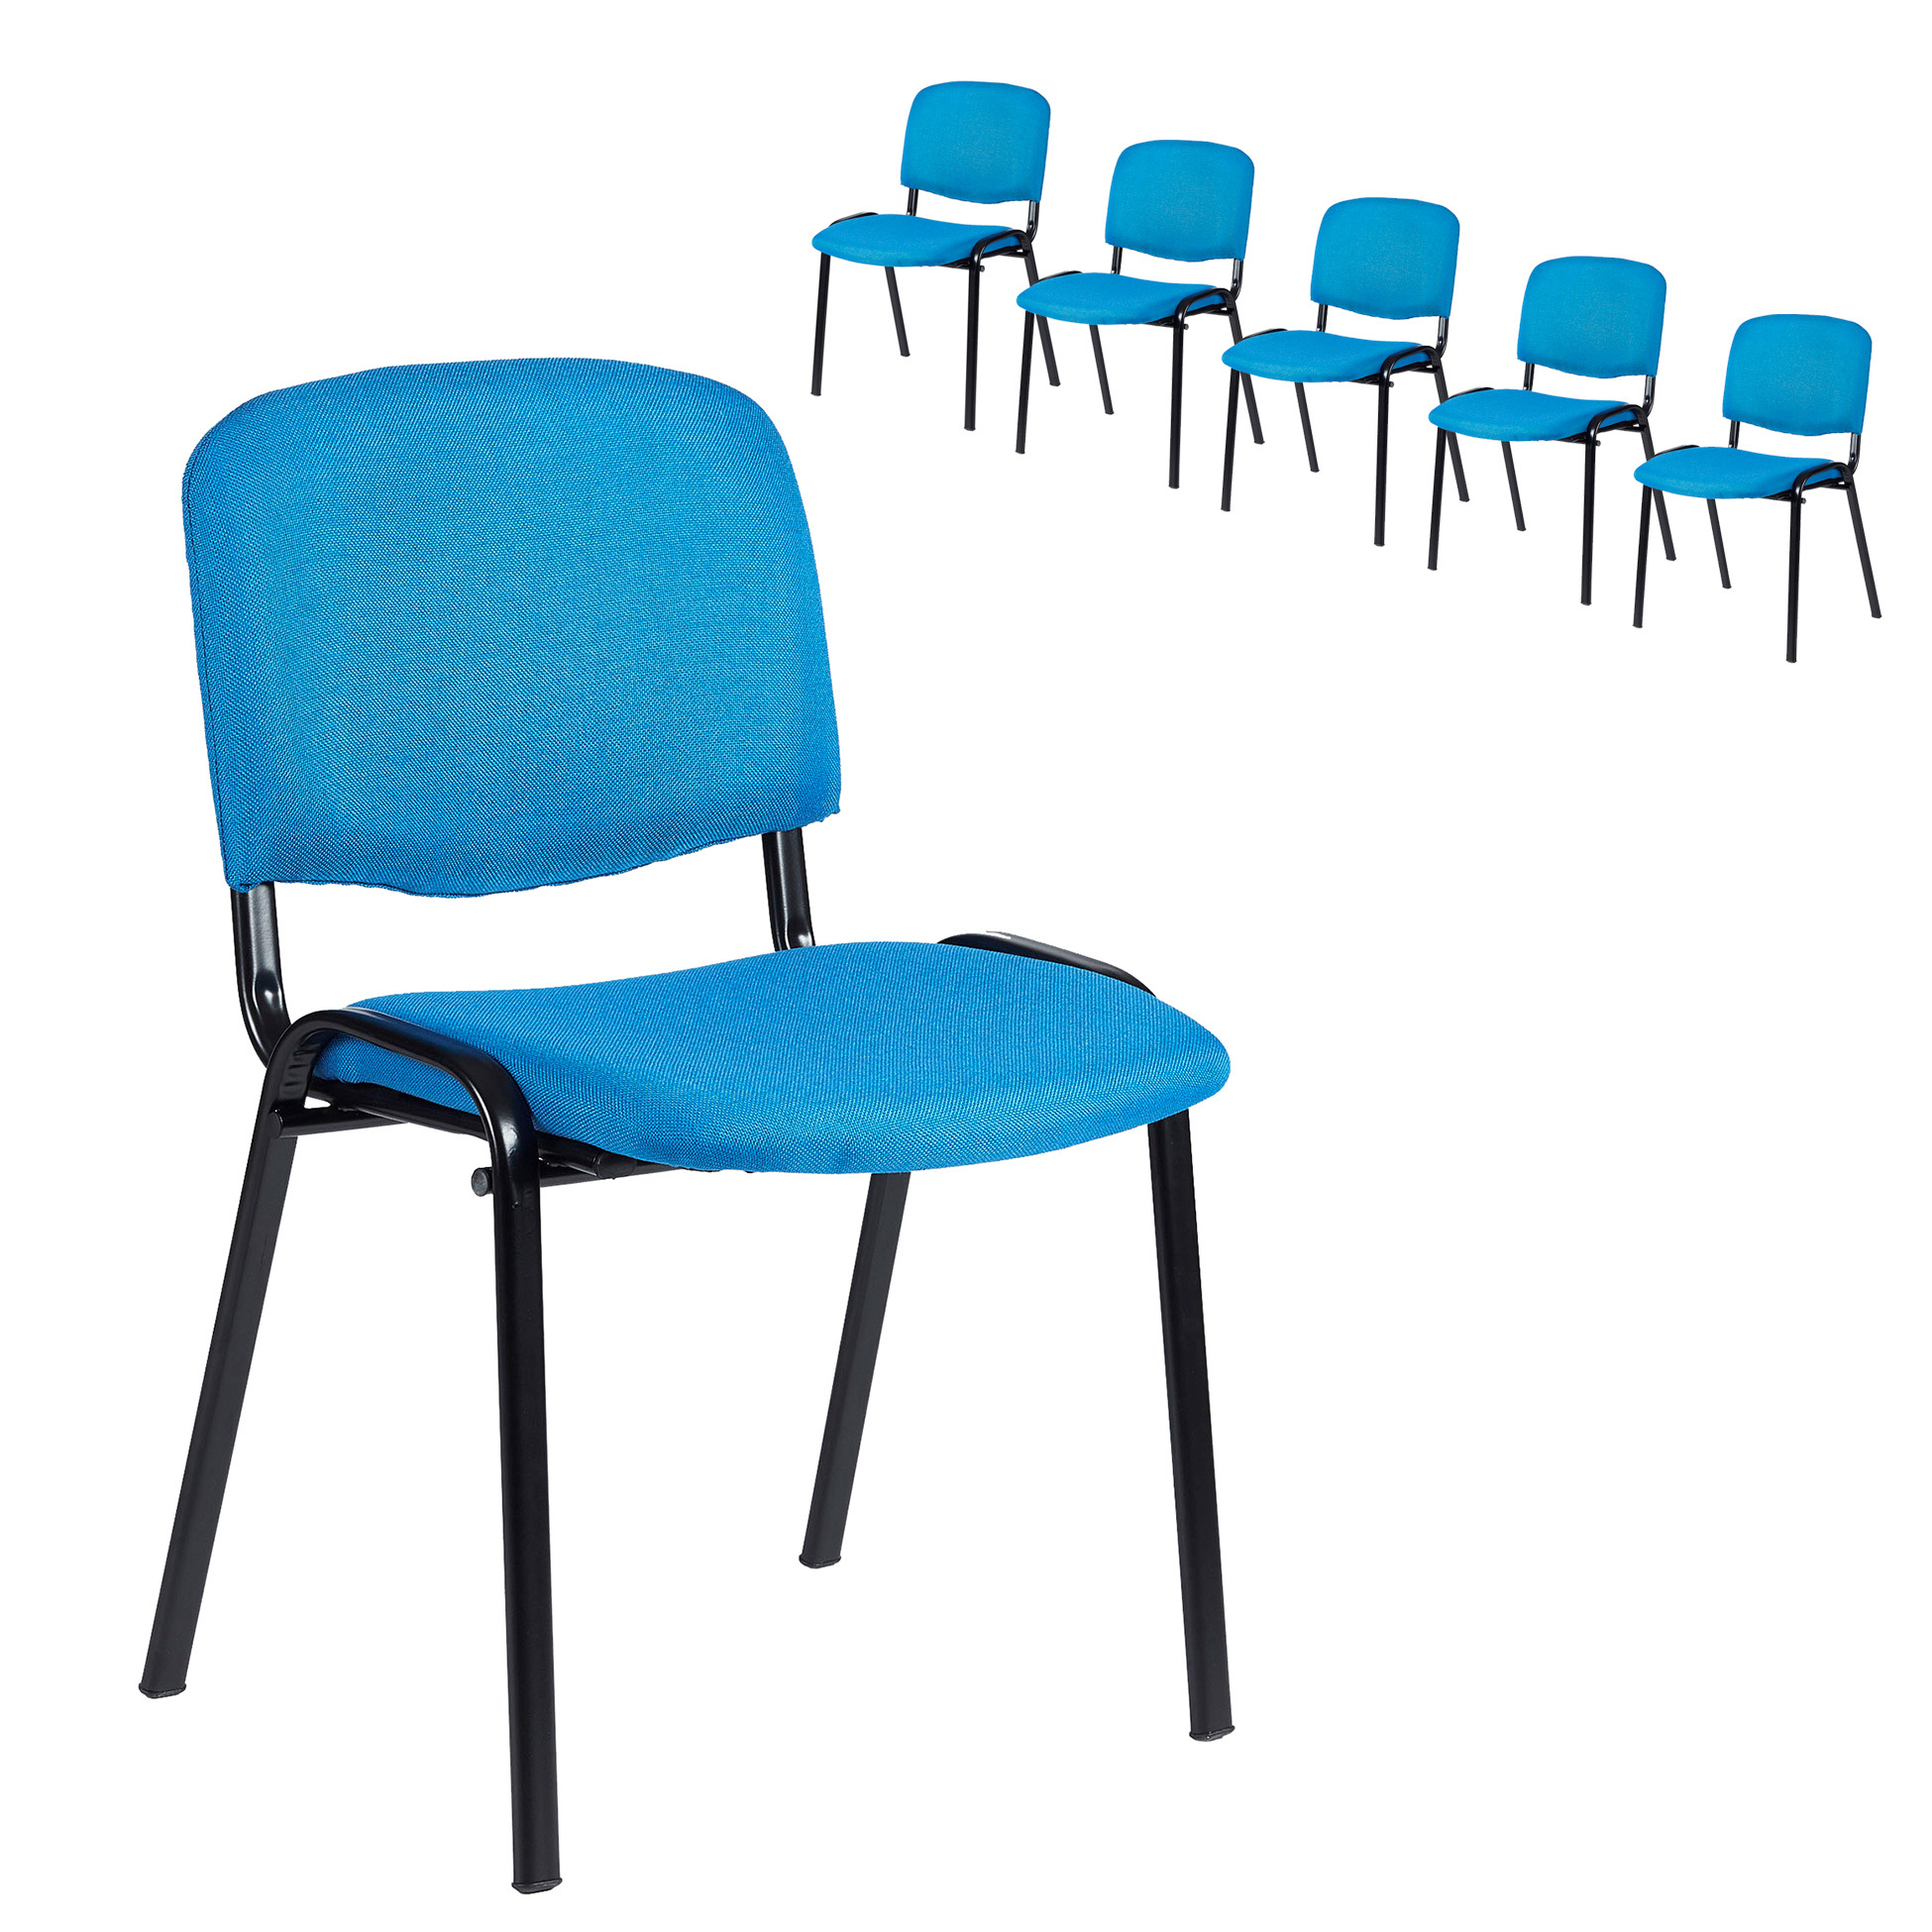 chair services affordable office dynamic and desk chairs seating used by conference budget versatile friendly keilhauer furniture